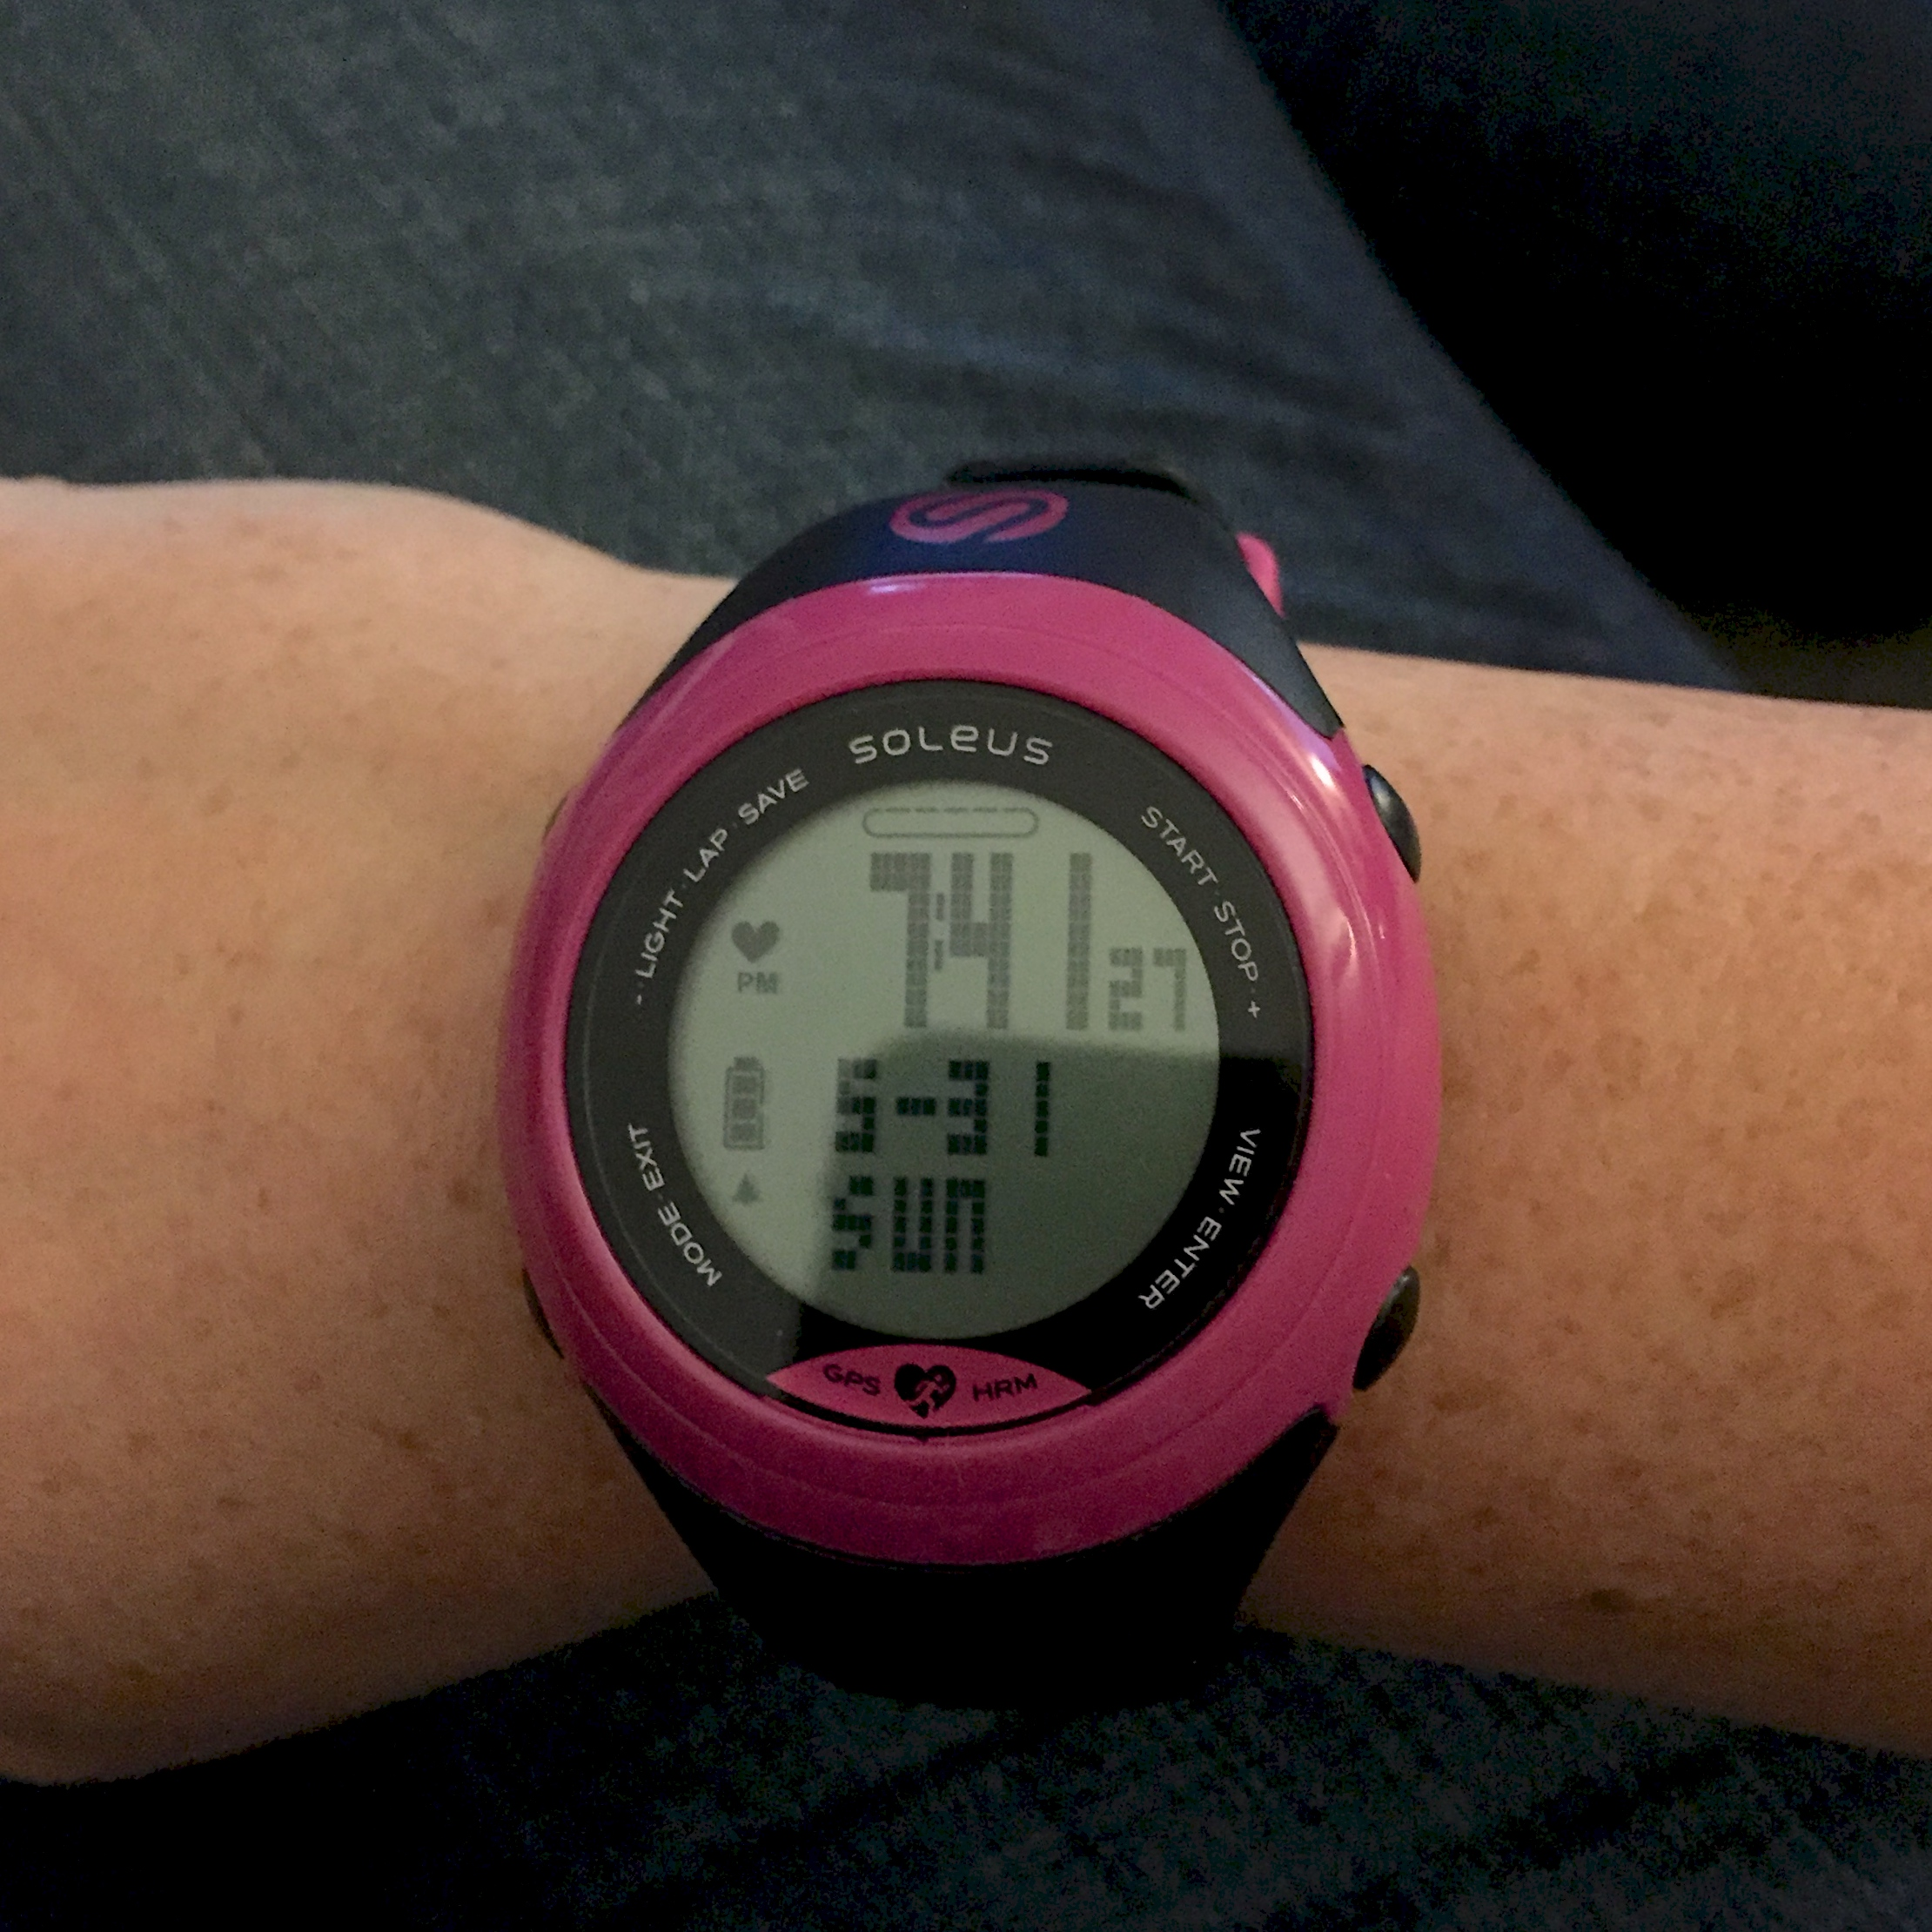 Watch with wrist hrm - Soleus Sole Hrm